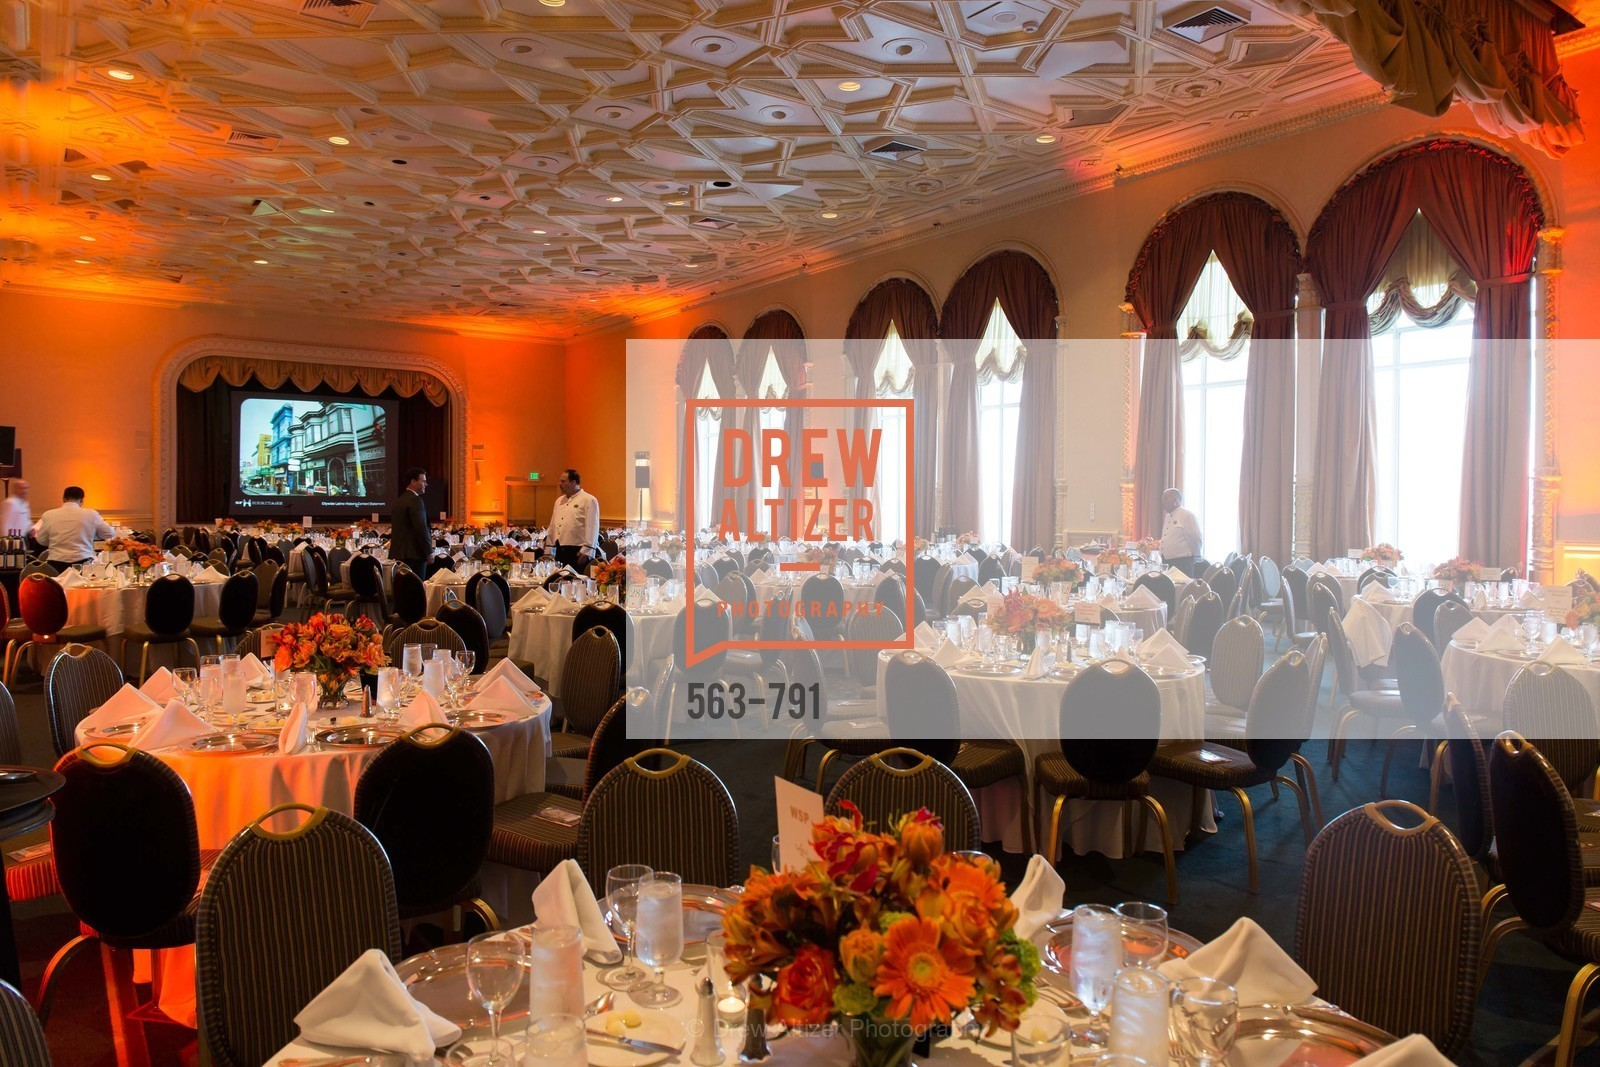 Atmosphere, SAN FRANCISCO HERITAGE Soiree 2015, US, April 18th, 2015,Drew Altizer, Drew Altizer Photography, full-service agency, private events, San Francisco photographer, photographer california